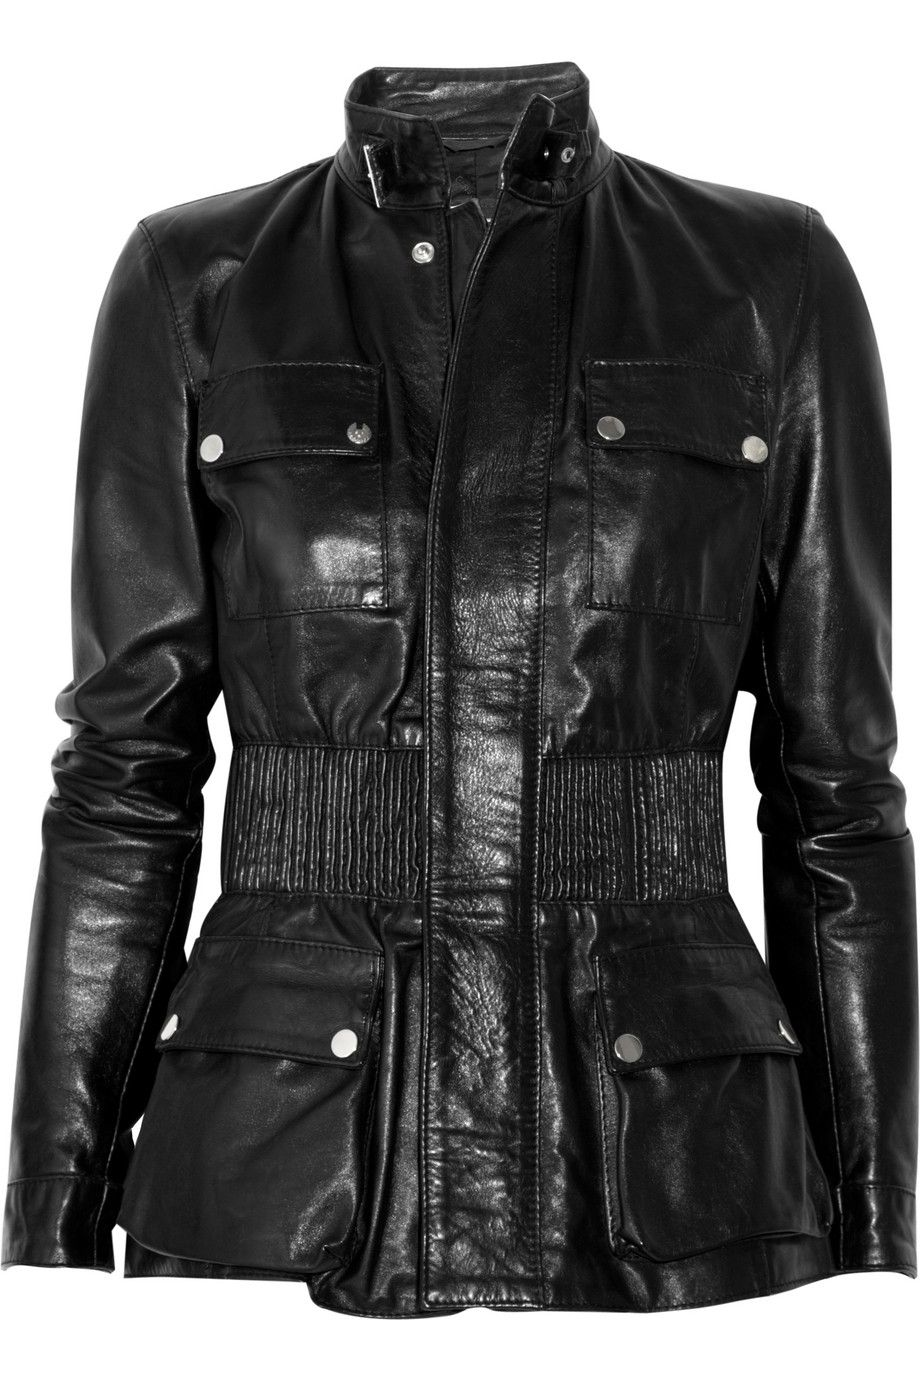 Belstaff Brian leather jacket I LOVE it!!!! (With images